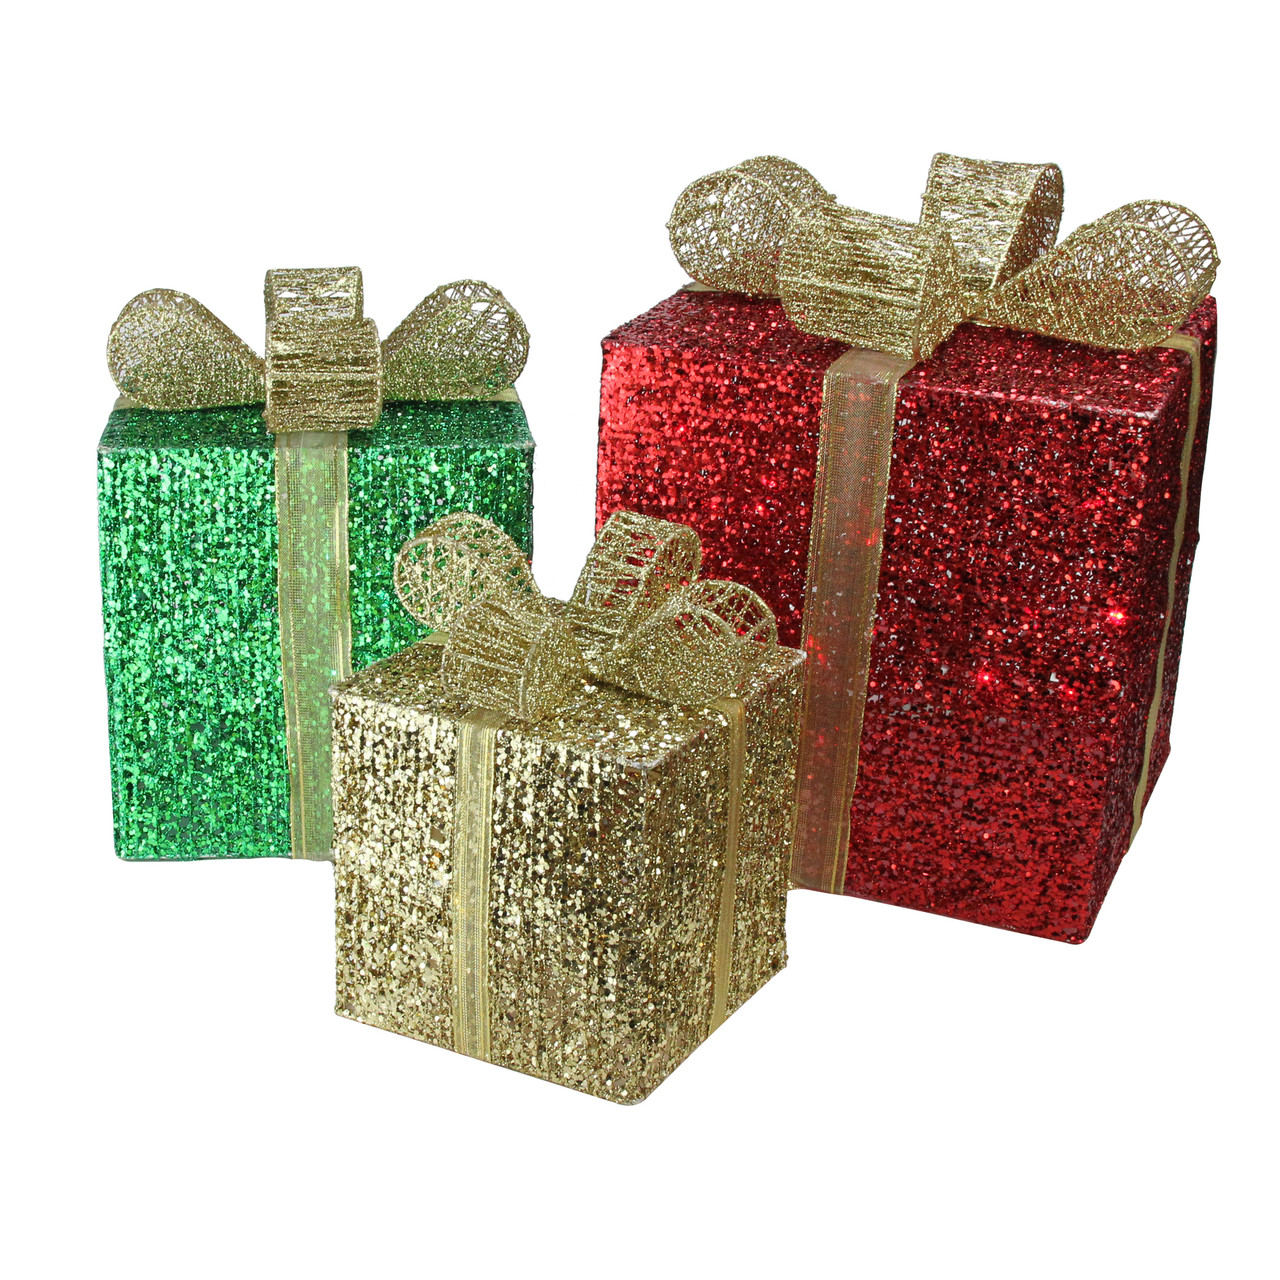 set of 3 lighted glistening prismatic gift box christmas outdoor decoration 32625597 - Decorative Christmas Gift Boxes With Lids